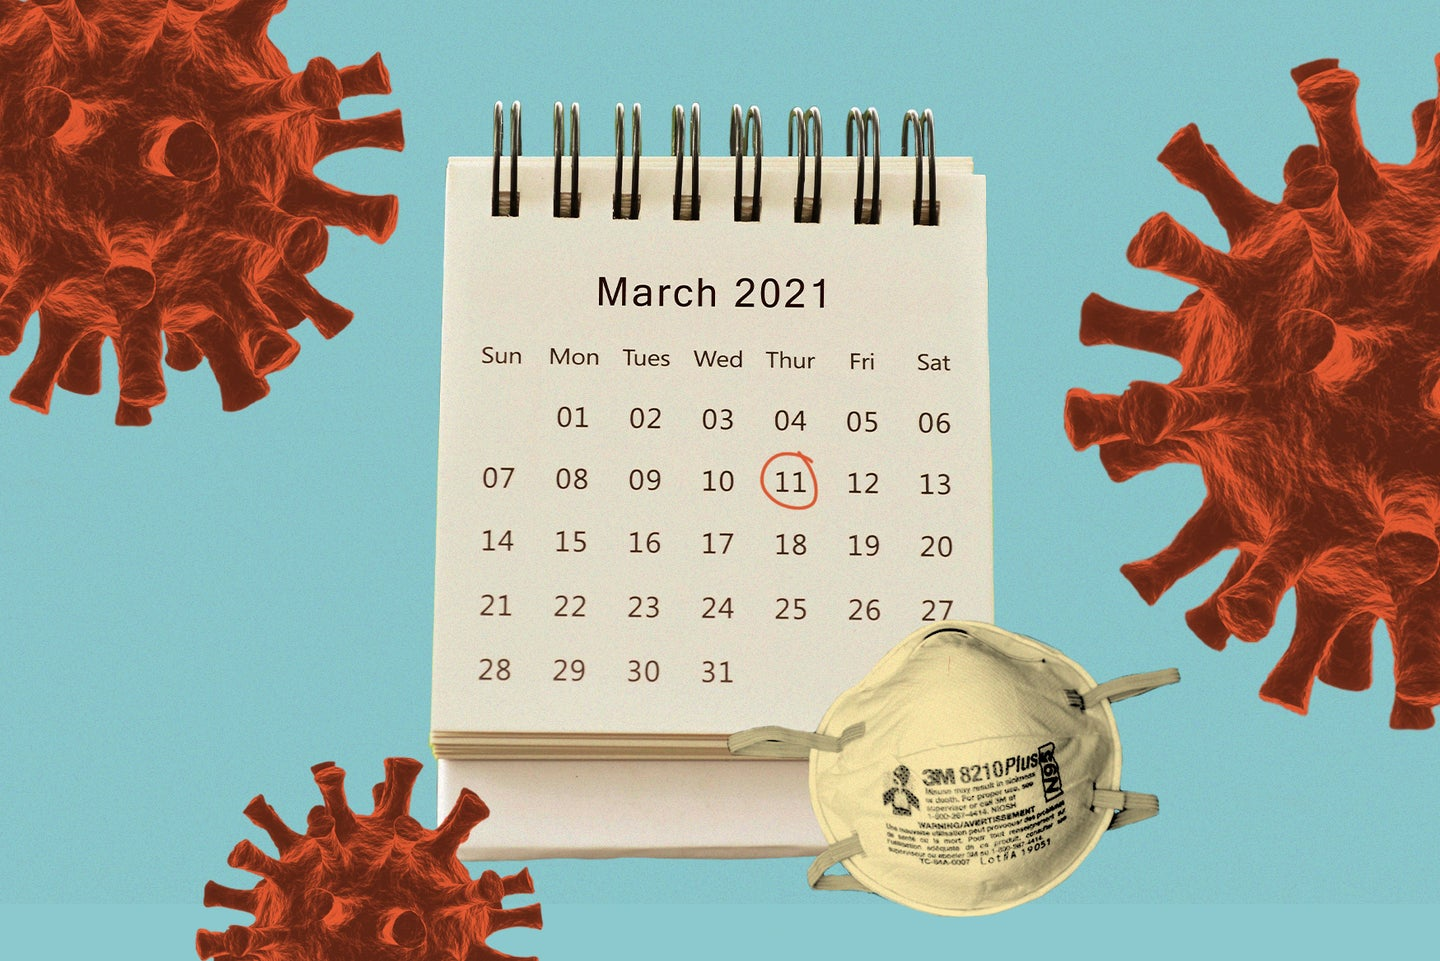 A calendar with the page for March 2021 displayed and a red circle around Thursday the 11th sits next to an N95 mask on a blue background surrounded by red illustrations of the coronavirus.